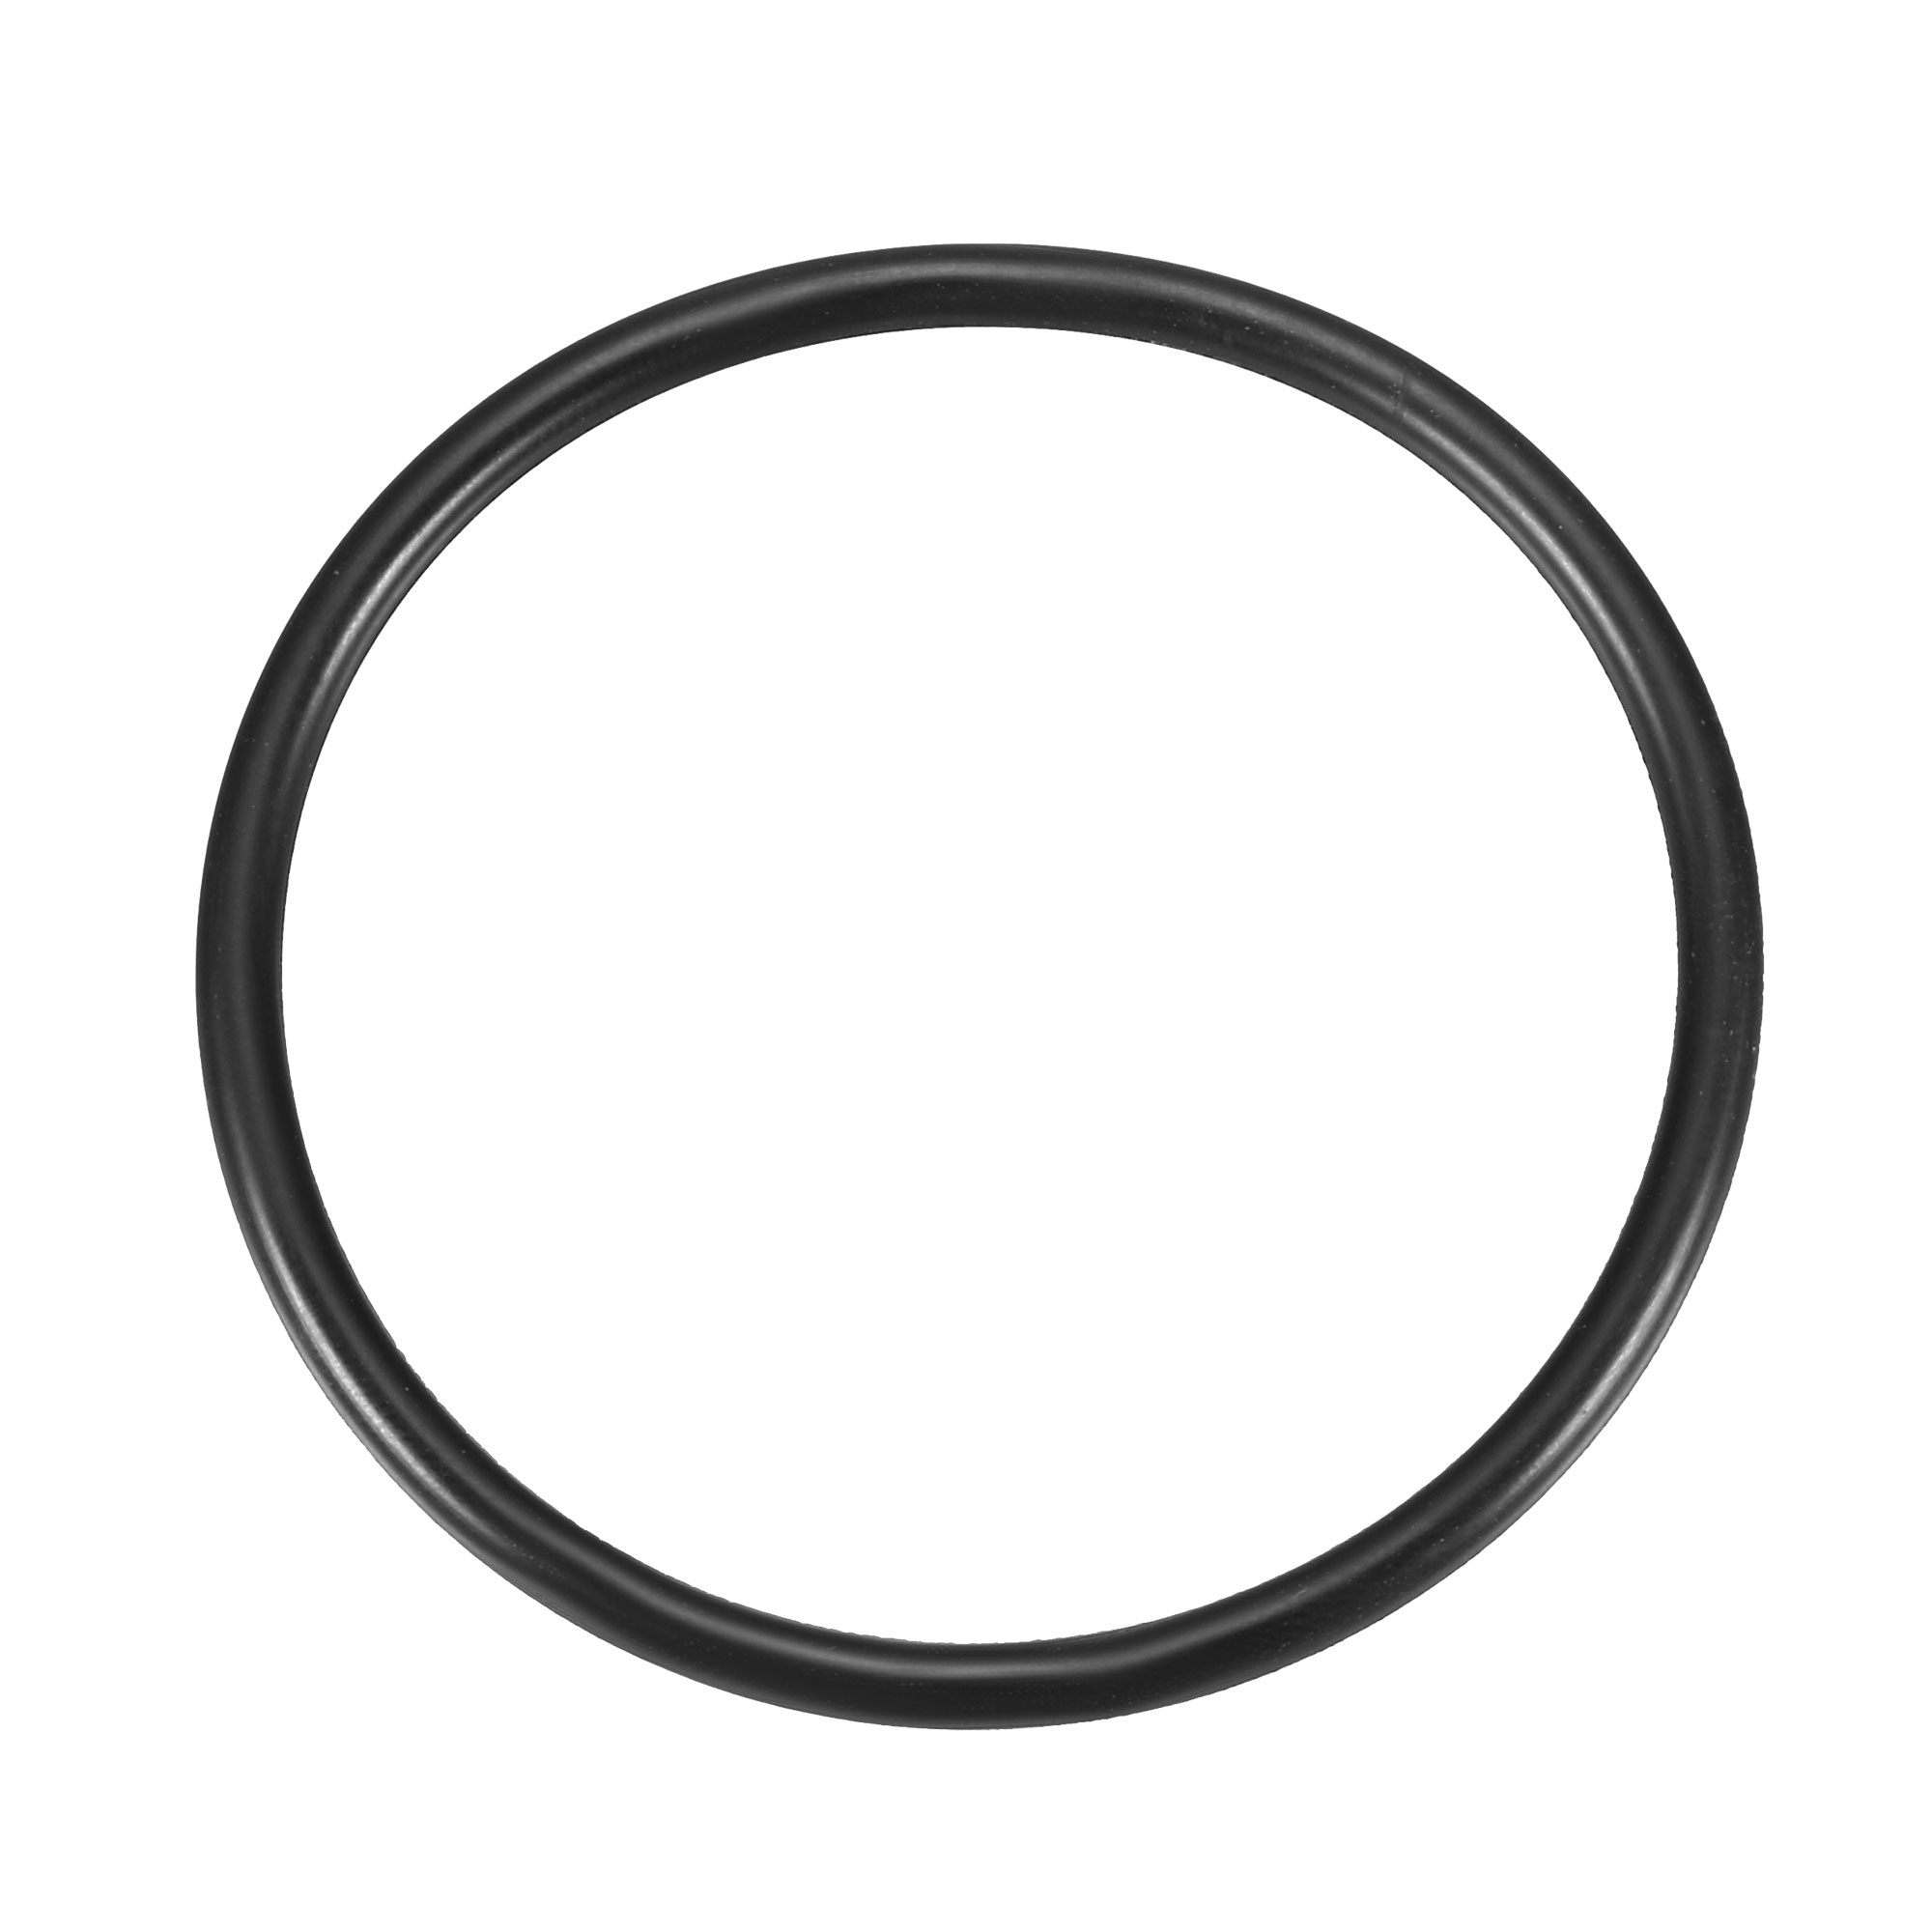 10 Pcs Oil Seal O Rings Black Nitrile Rubber 72mm OD 4mm Thickness